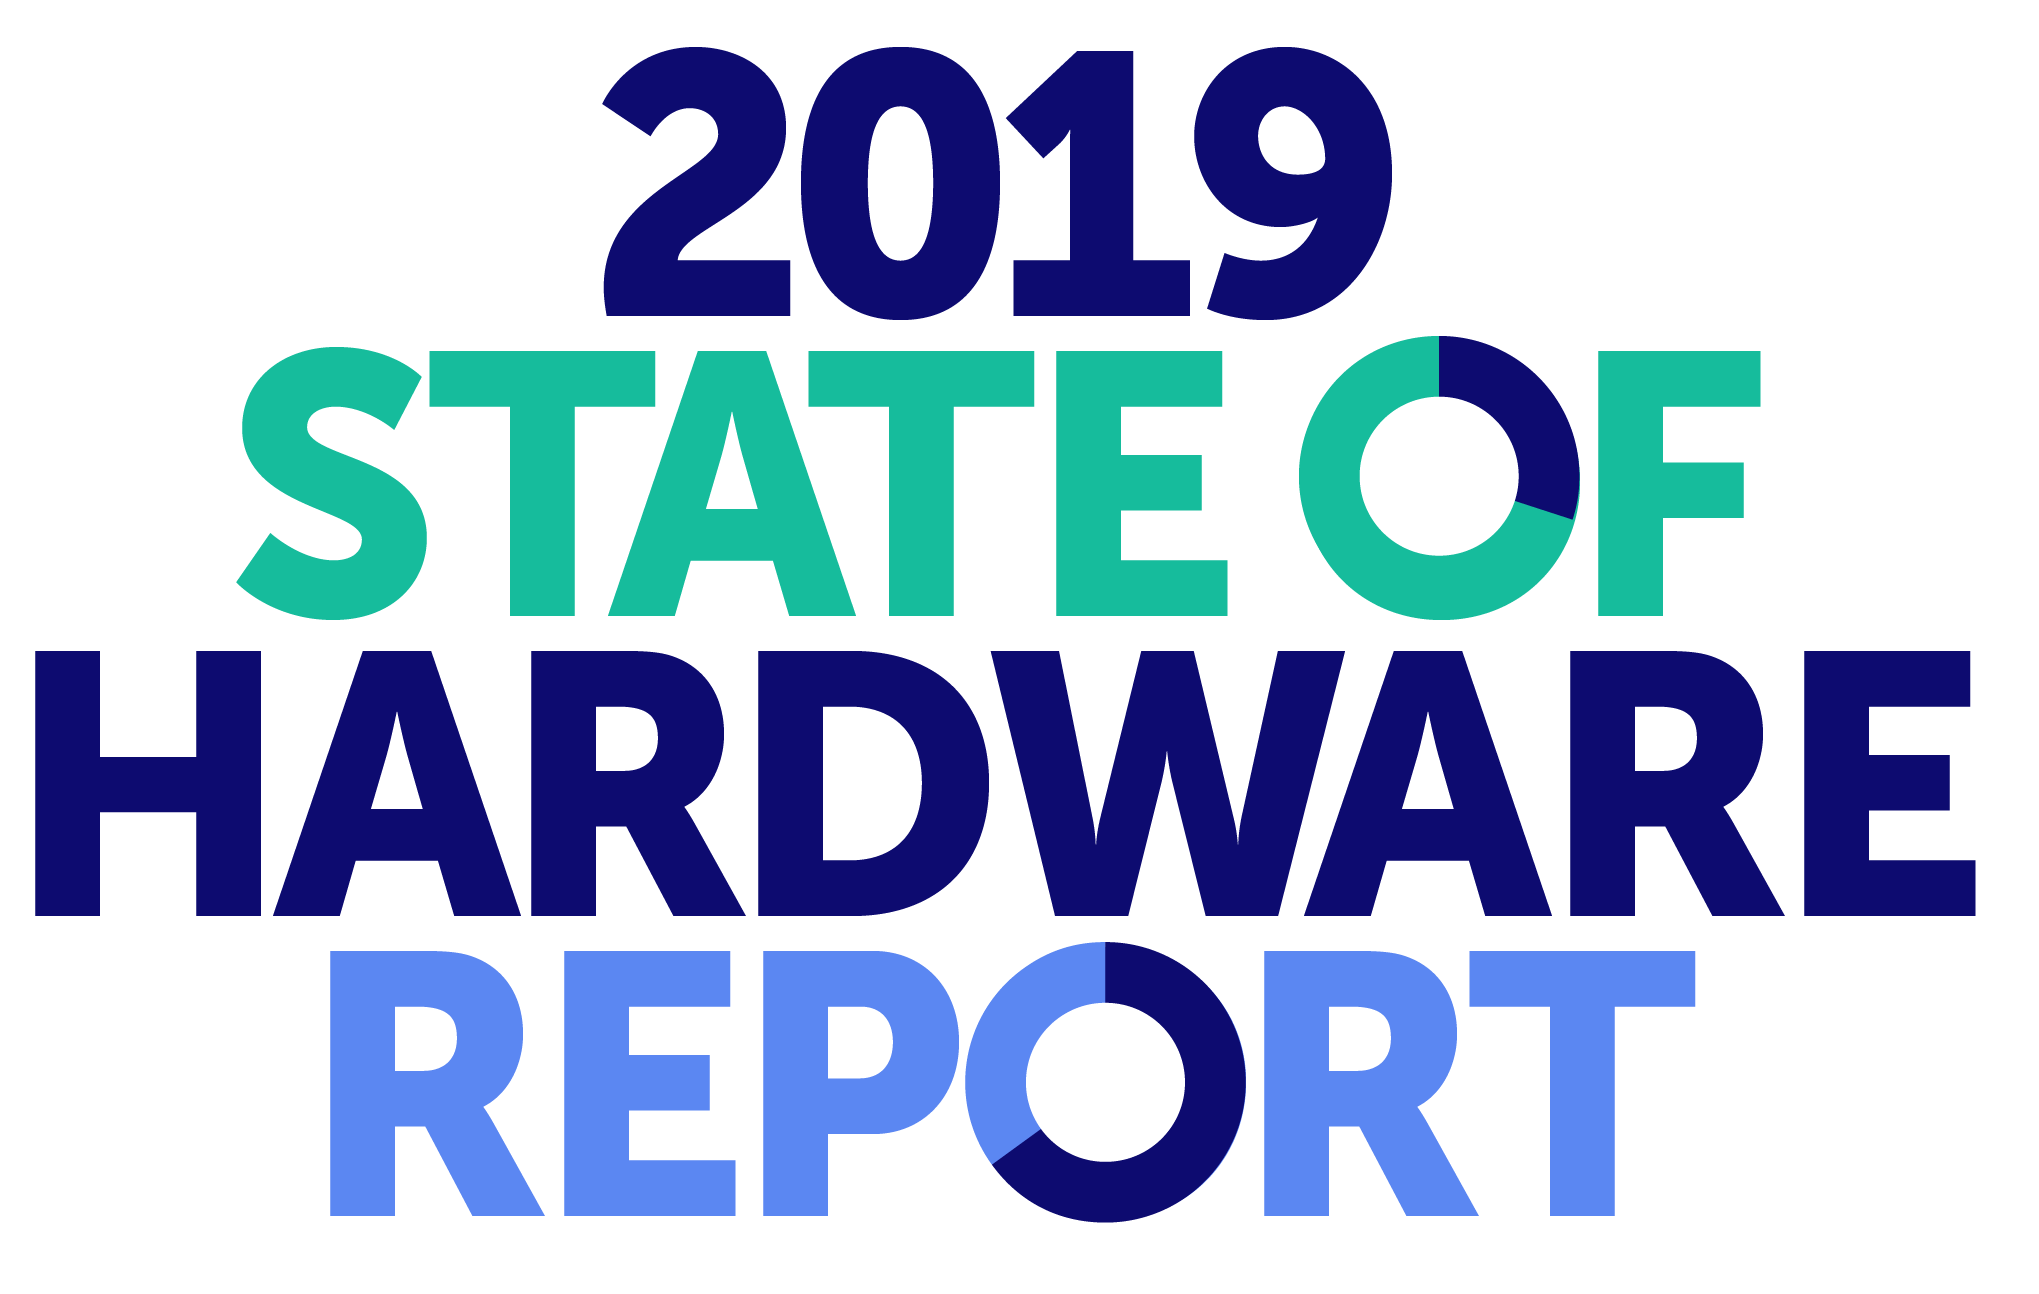 2019 State of Hardware Report from Fictiv